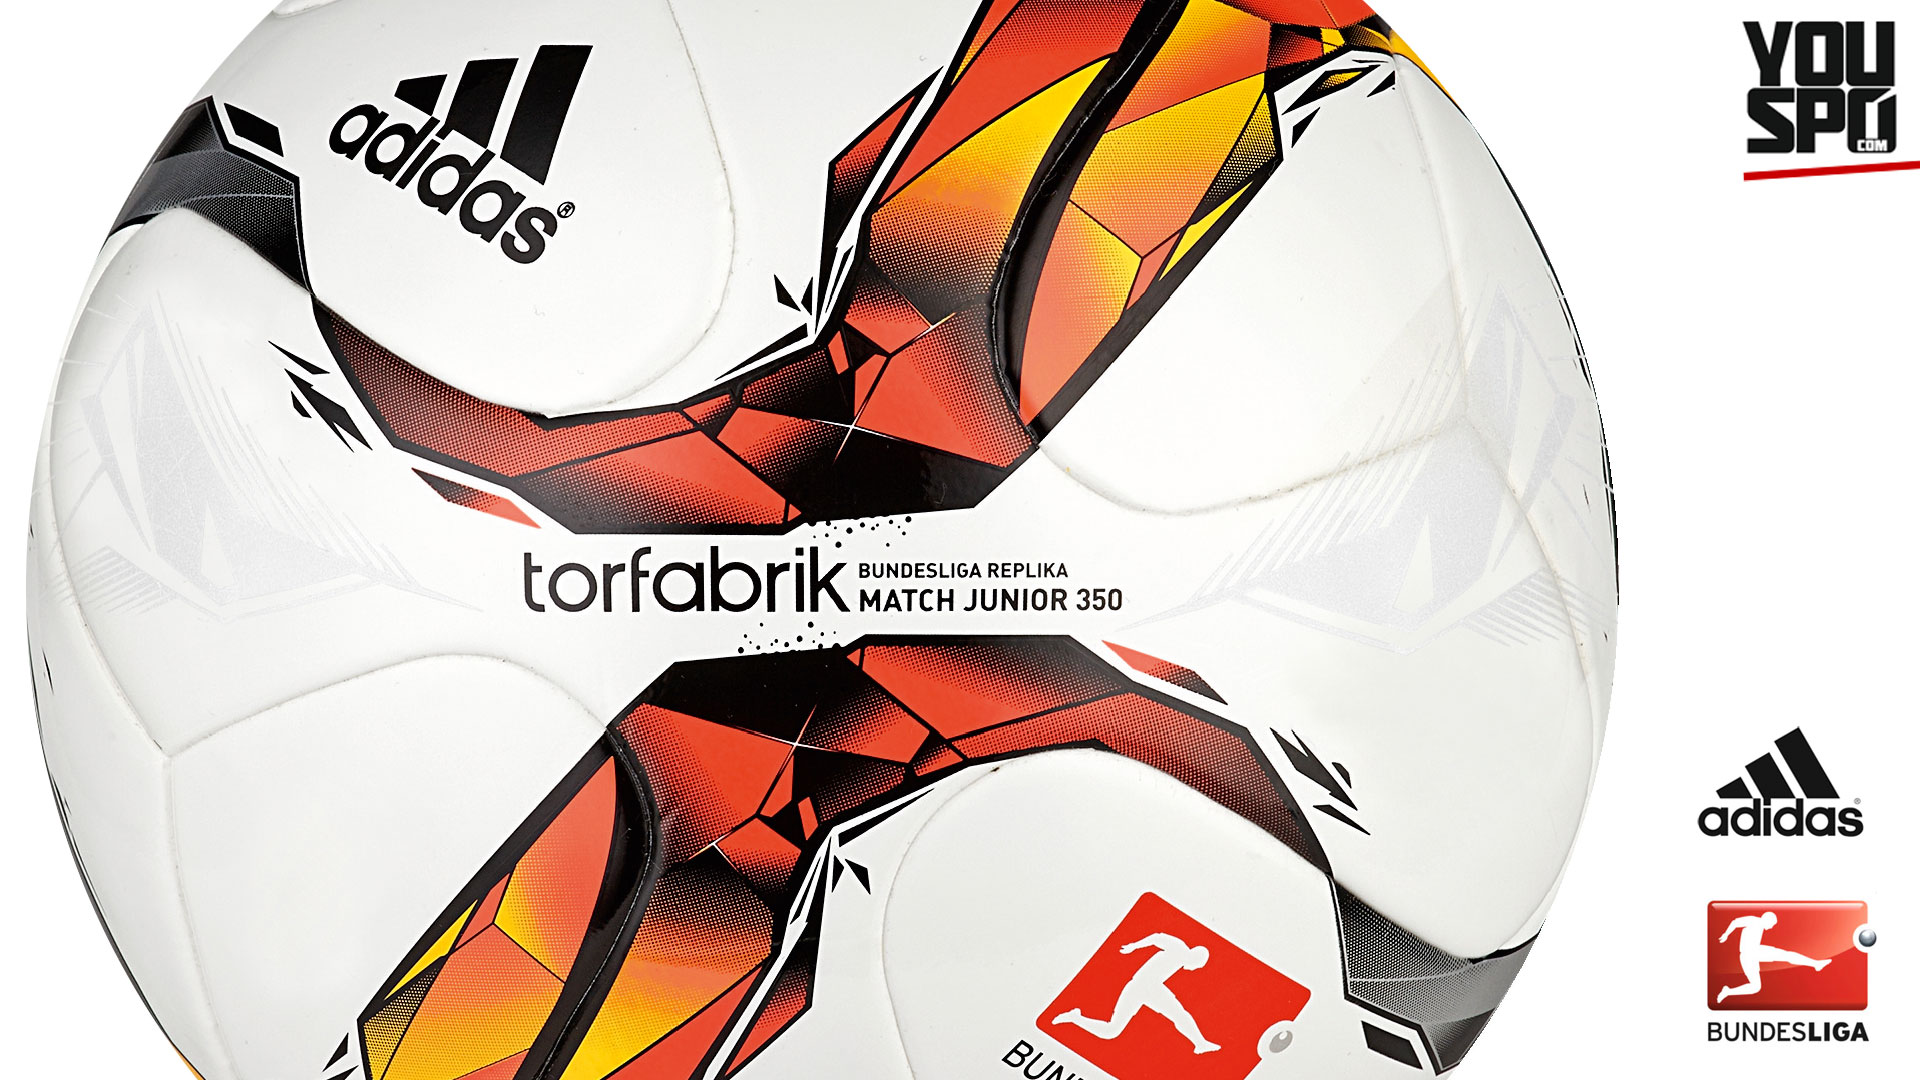 Adidas Torfarbik 15/16 Junior 350 / Junior 290 (2015-2016)